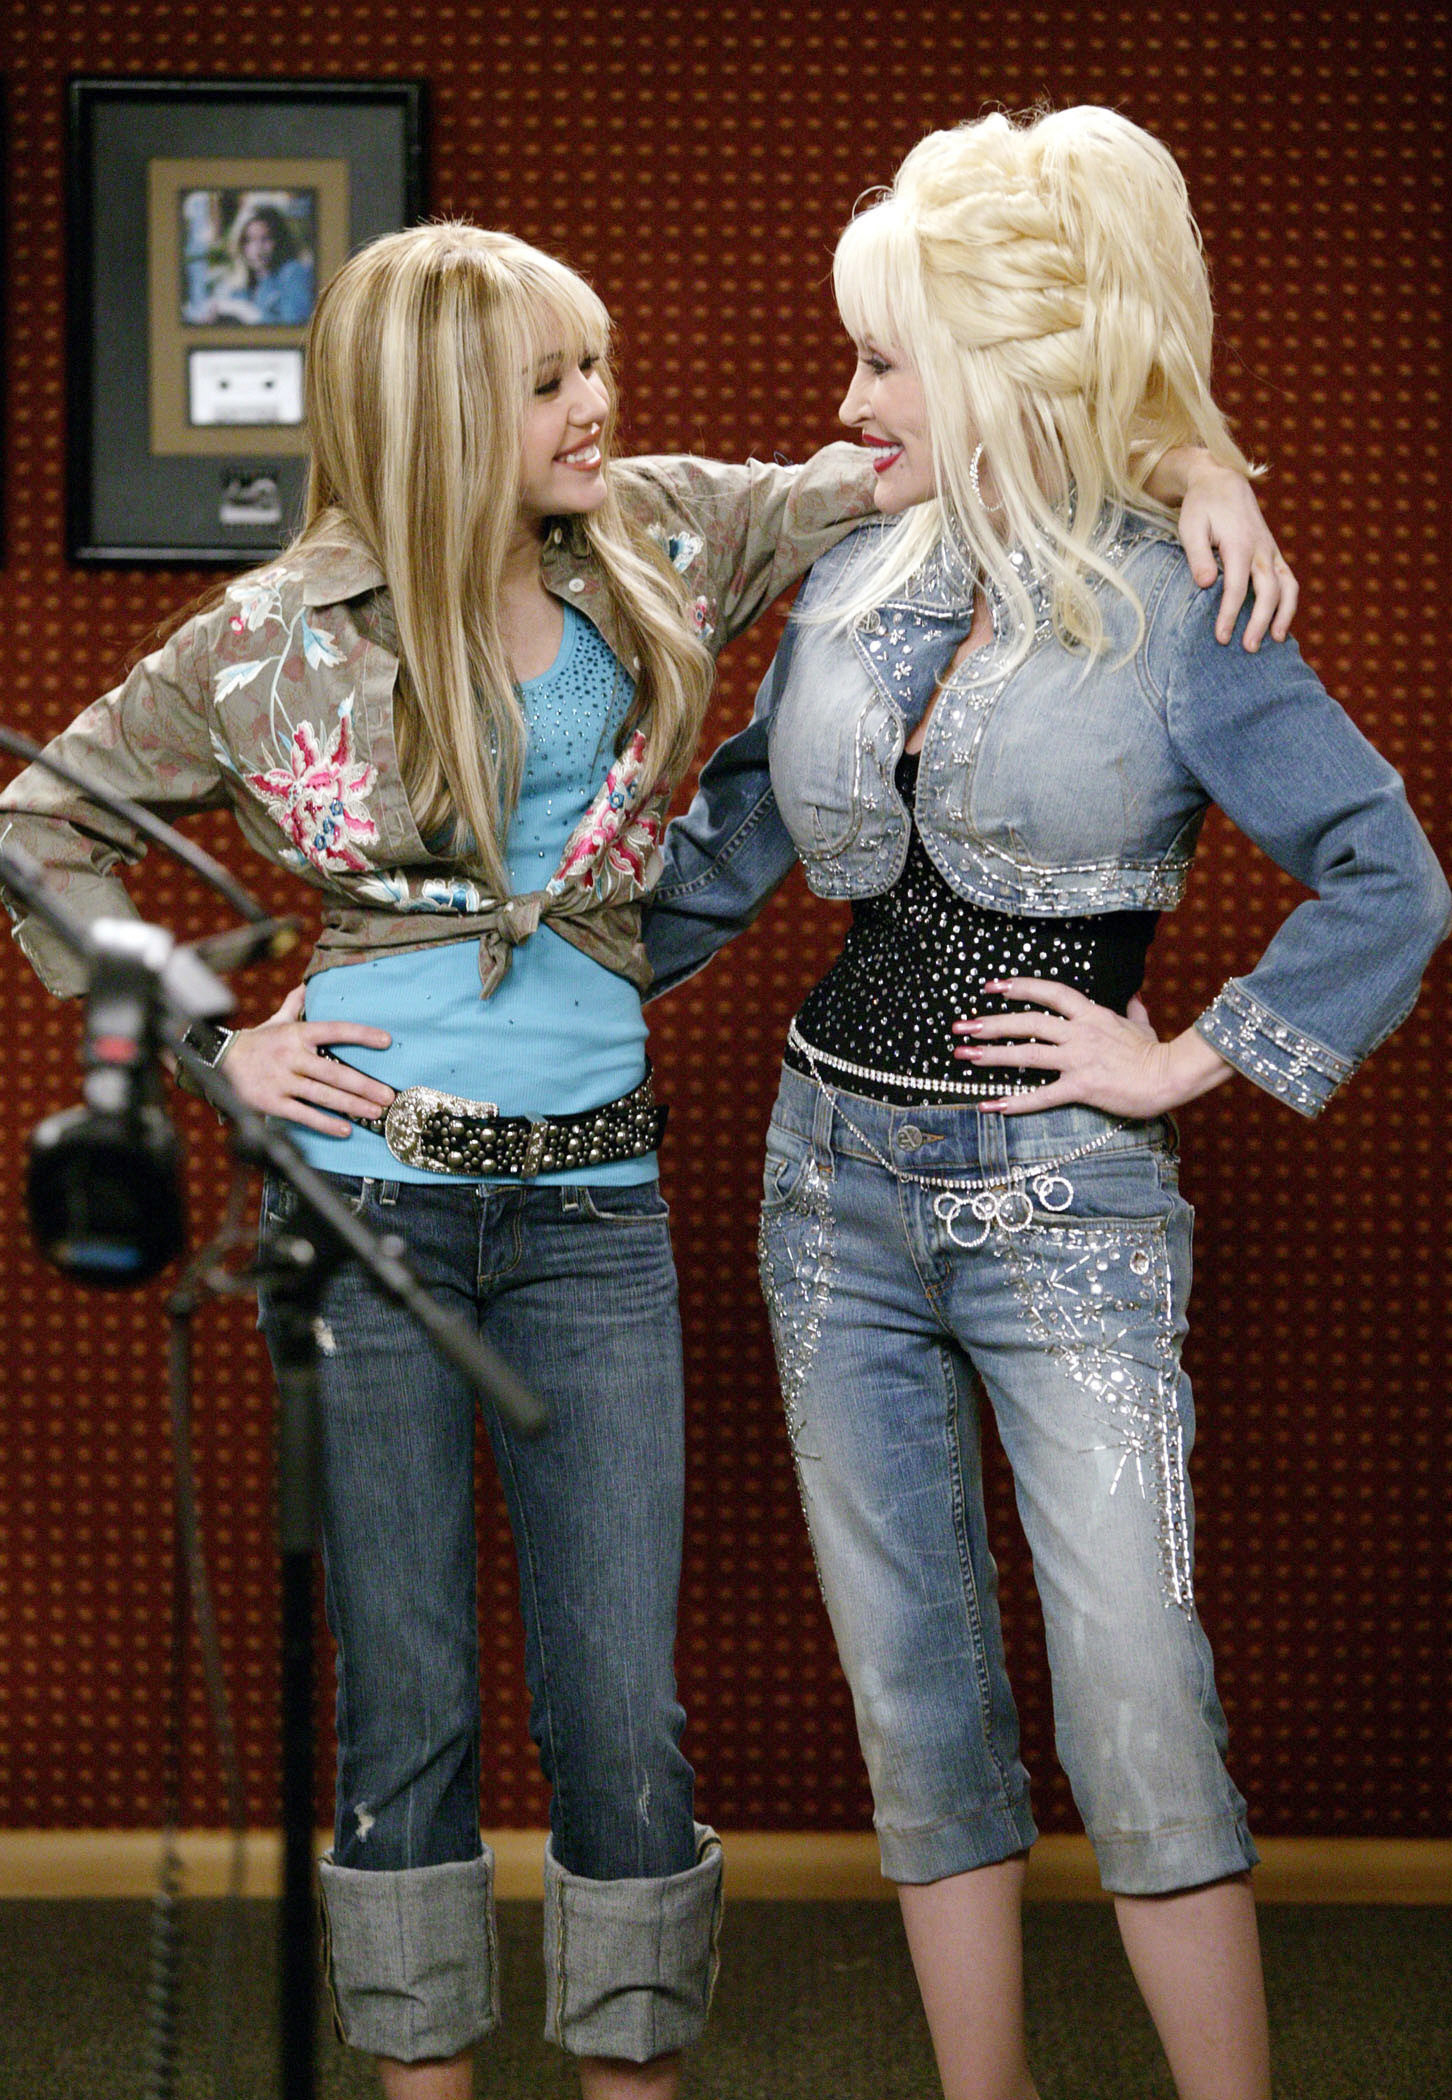 """Miley Cyrus and Dolly Parton in Dolly's first episode in 2006: """"Good Golly, Miss Dolly"""""""